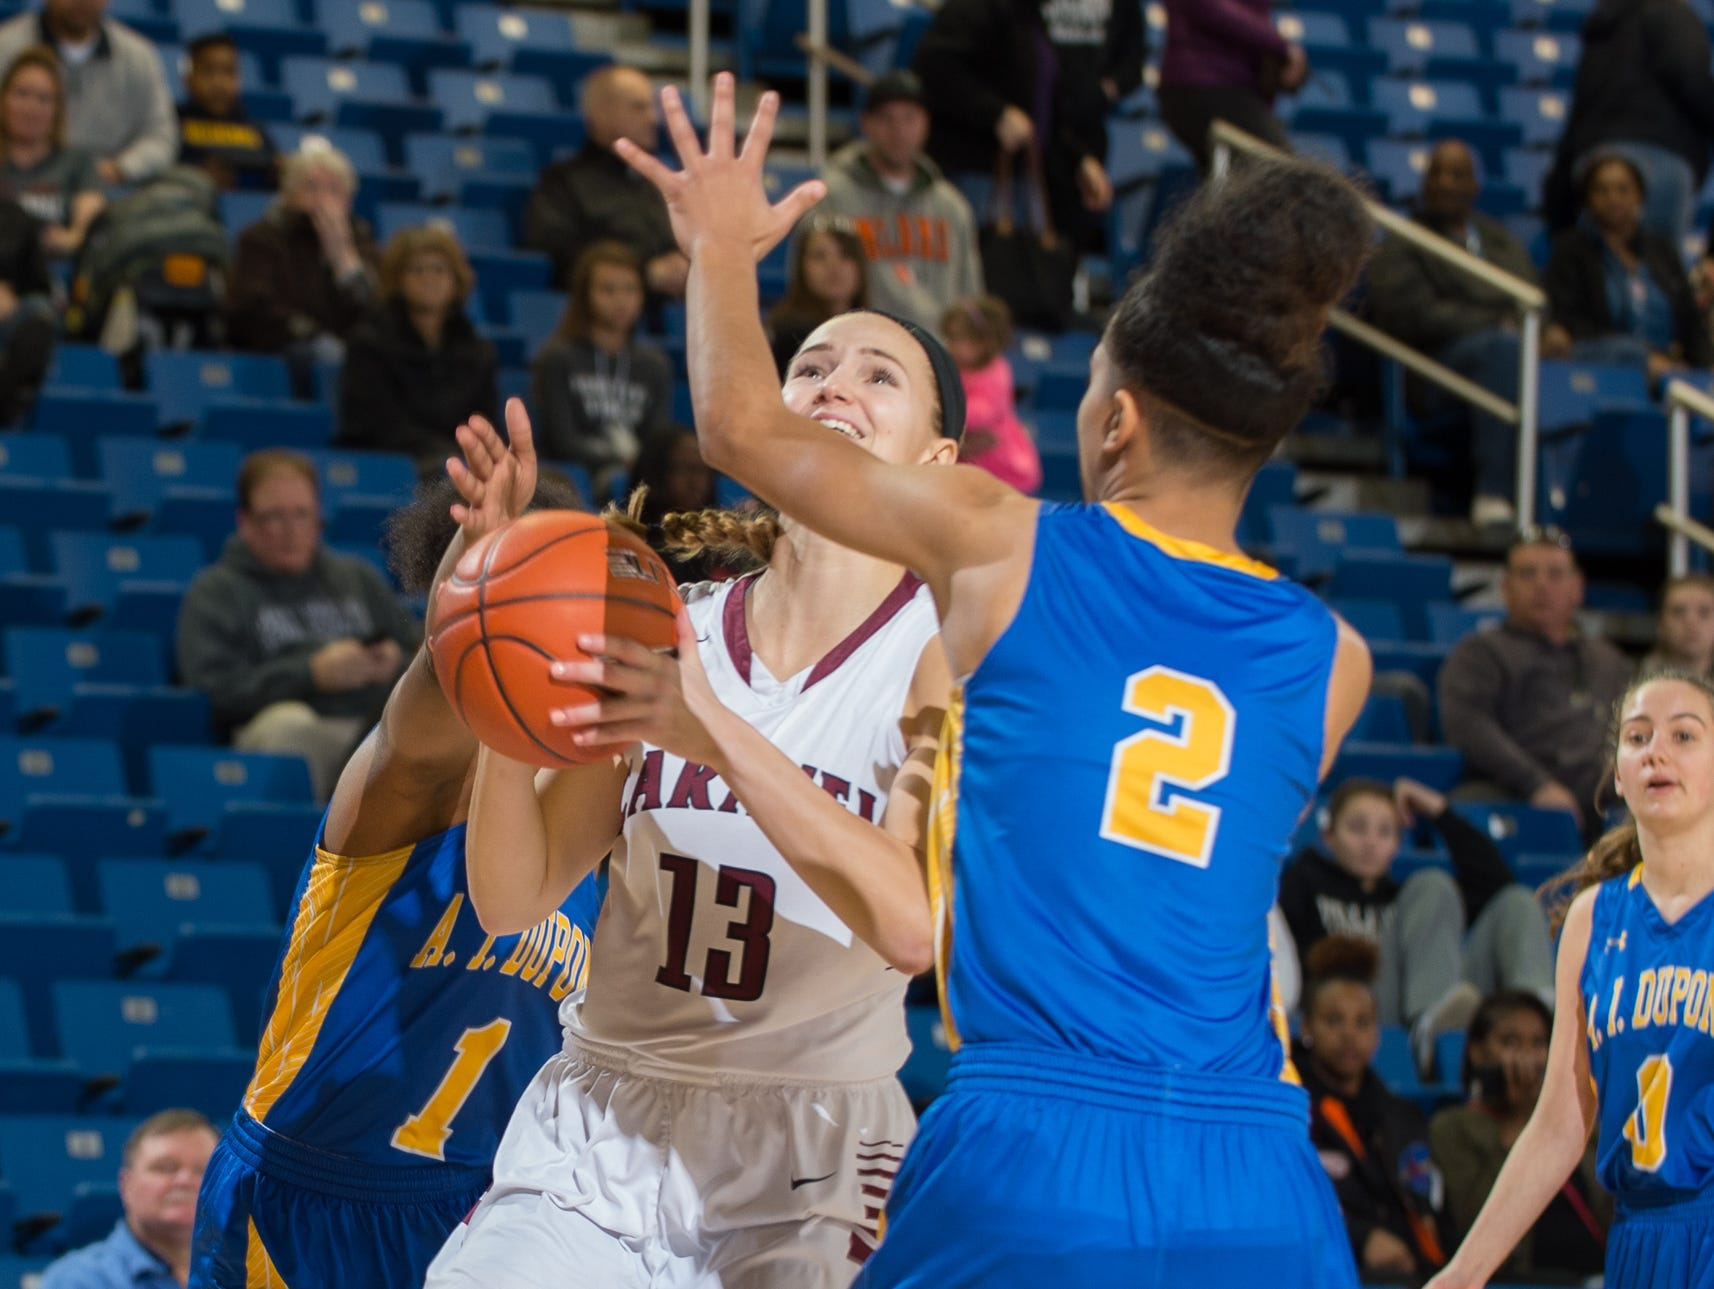 Caravel's Grace Lange (13) drives through A.I. duPont's defense for a shot in the quarterfinals of DIAA Girls Basketball Tournament at the University of Delaware.